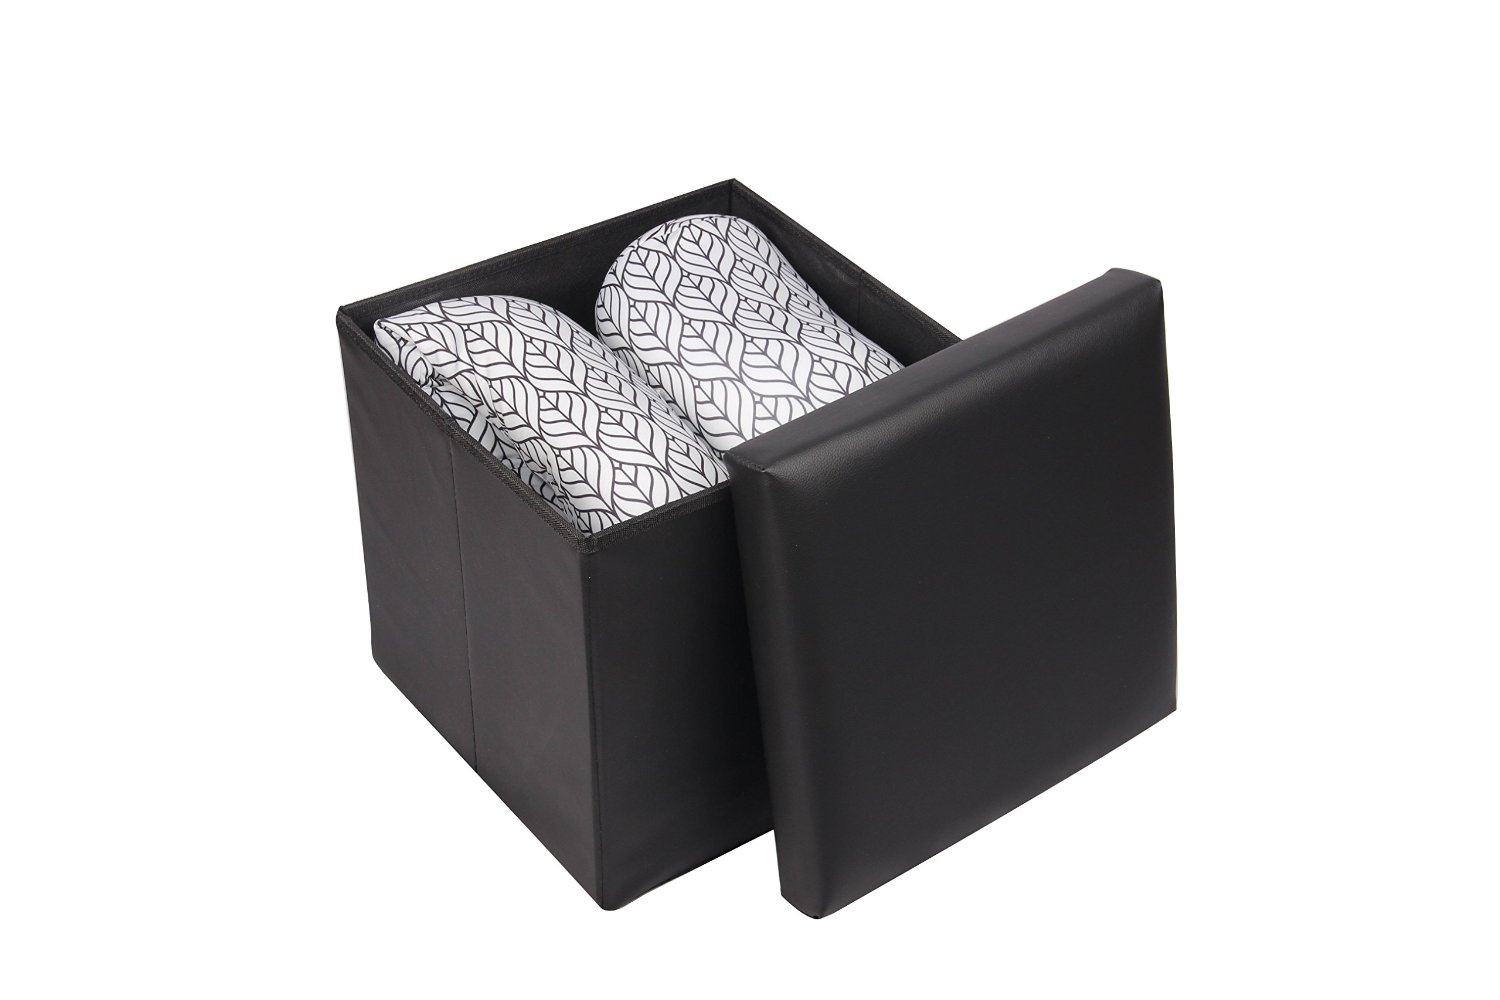 Sensational Buy Fhe Group Folding Storage Ottoman Bench With Hard Lid Gamerscity Chair Design For Home Gamerscityorg